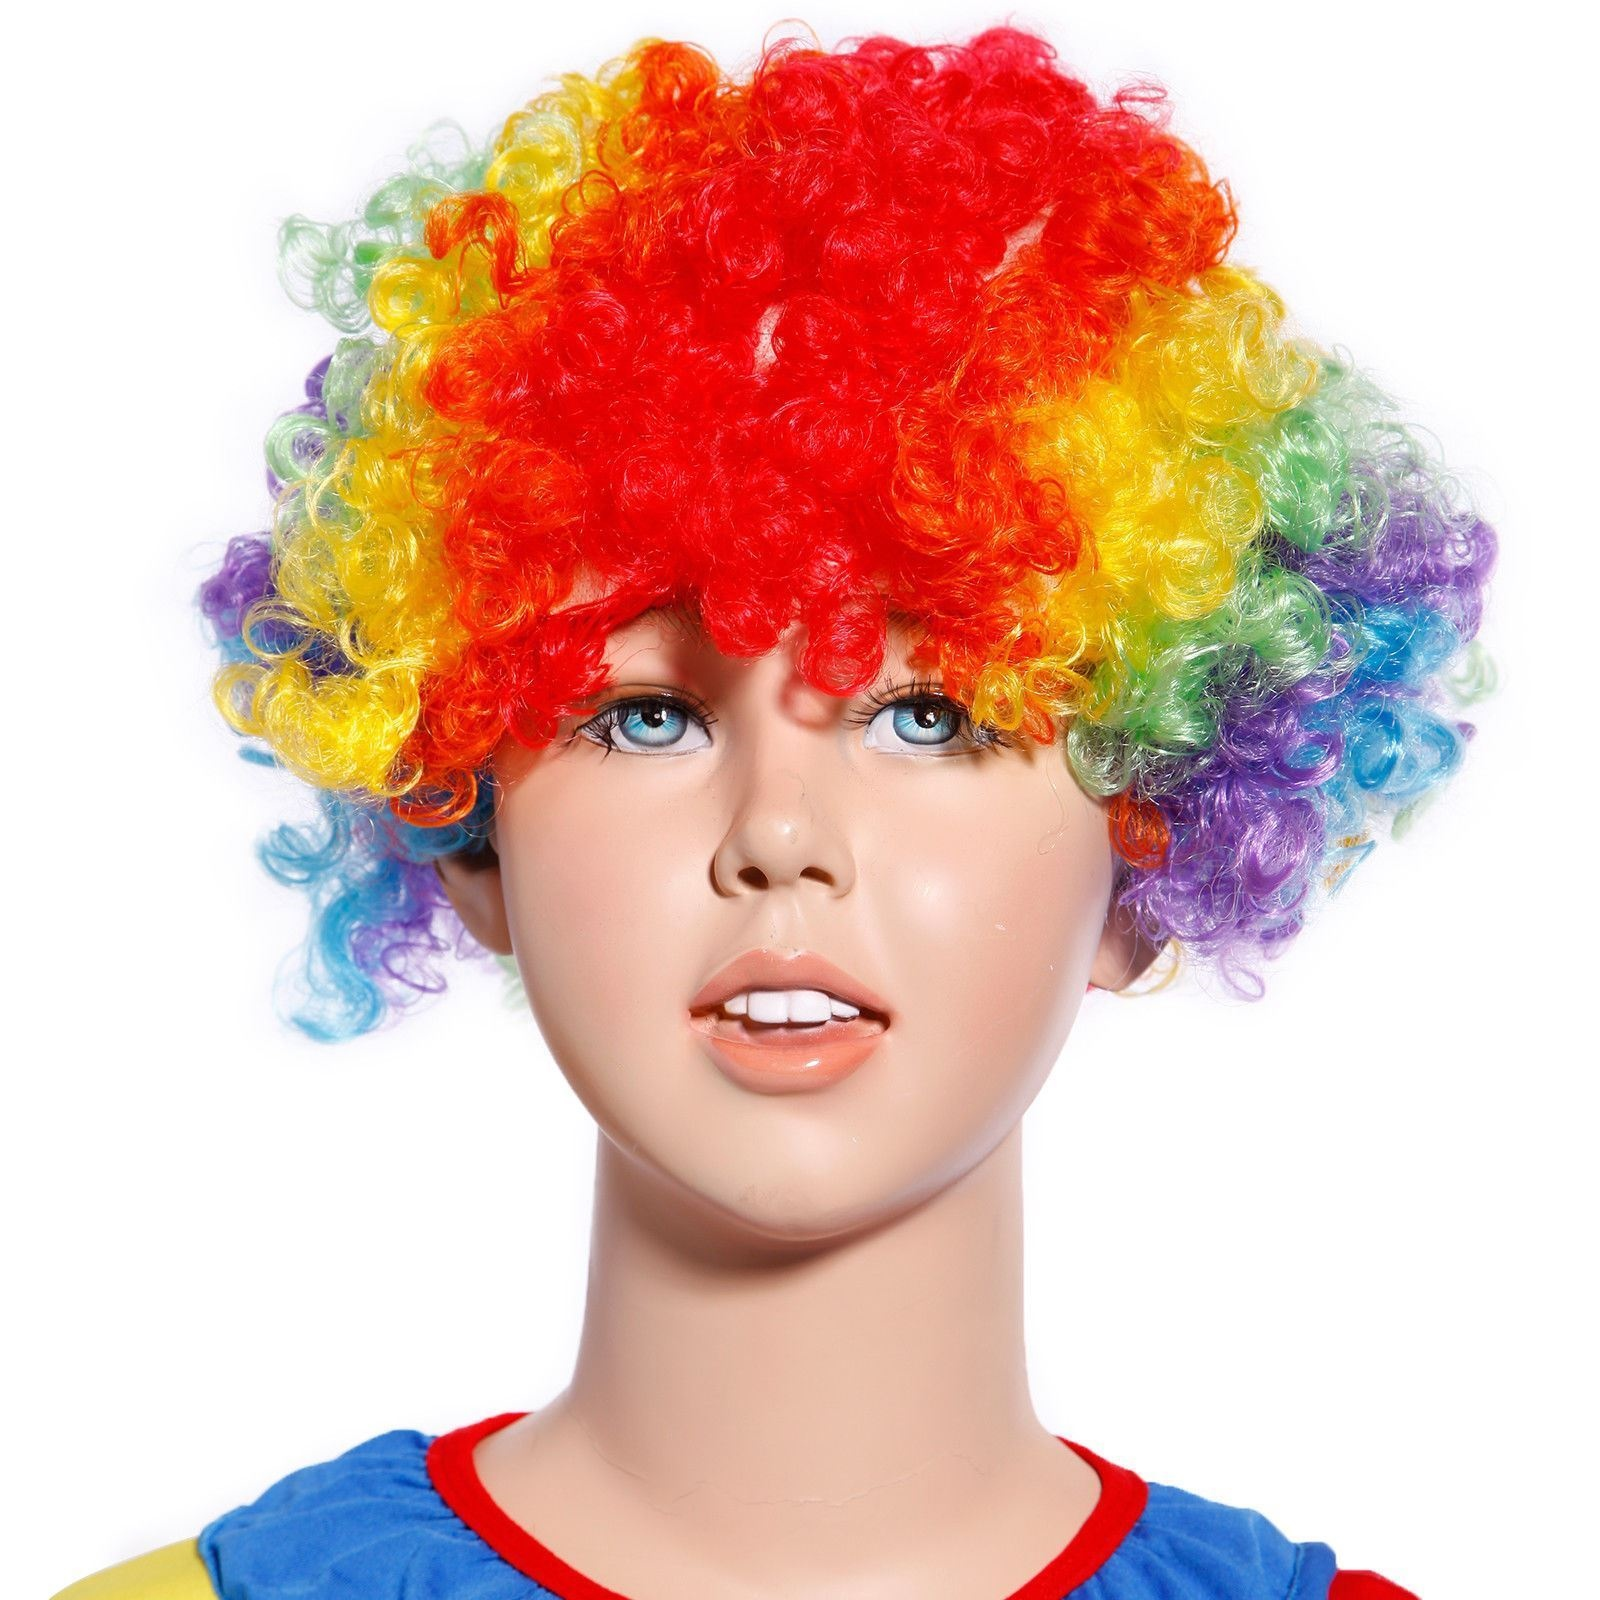 Details about 80s Curly Afro Wig Party Clown Funky Disco Kids Childs Adult  Costume Rainbow 69d85e57605a